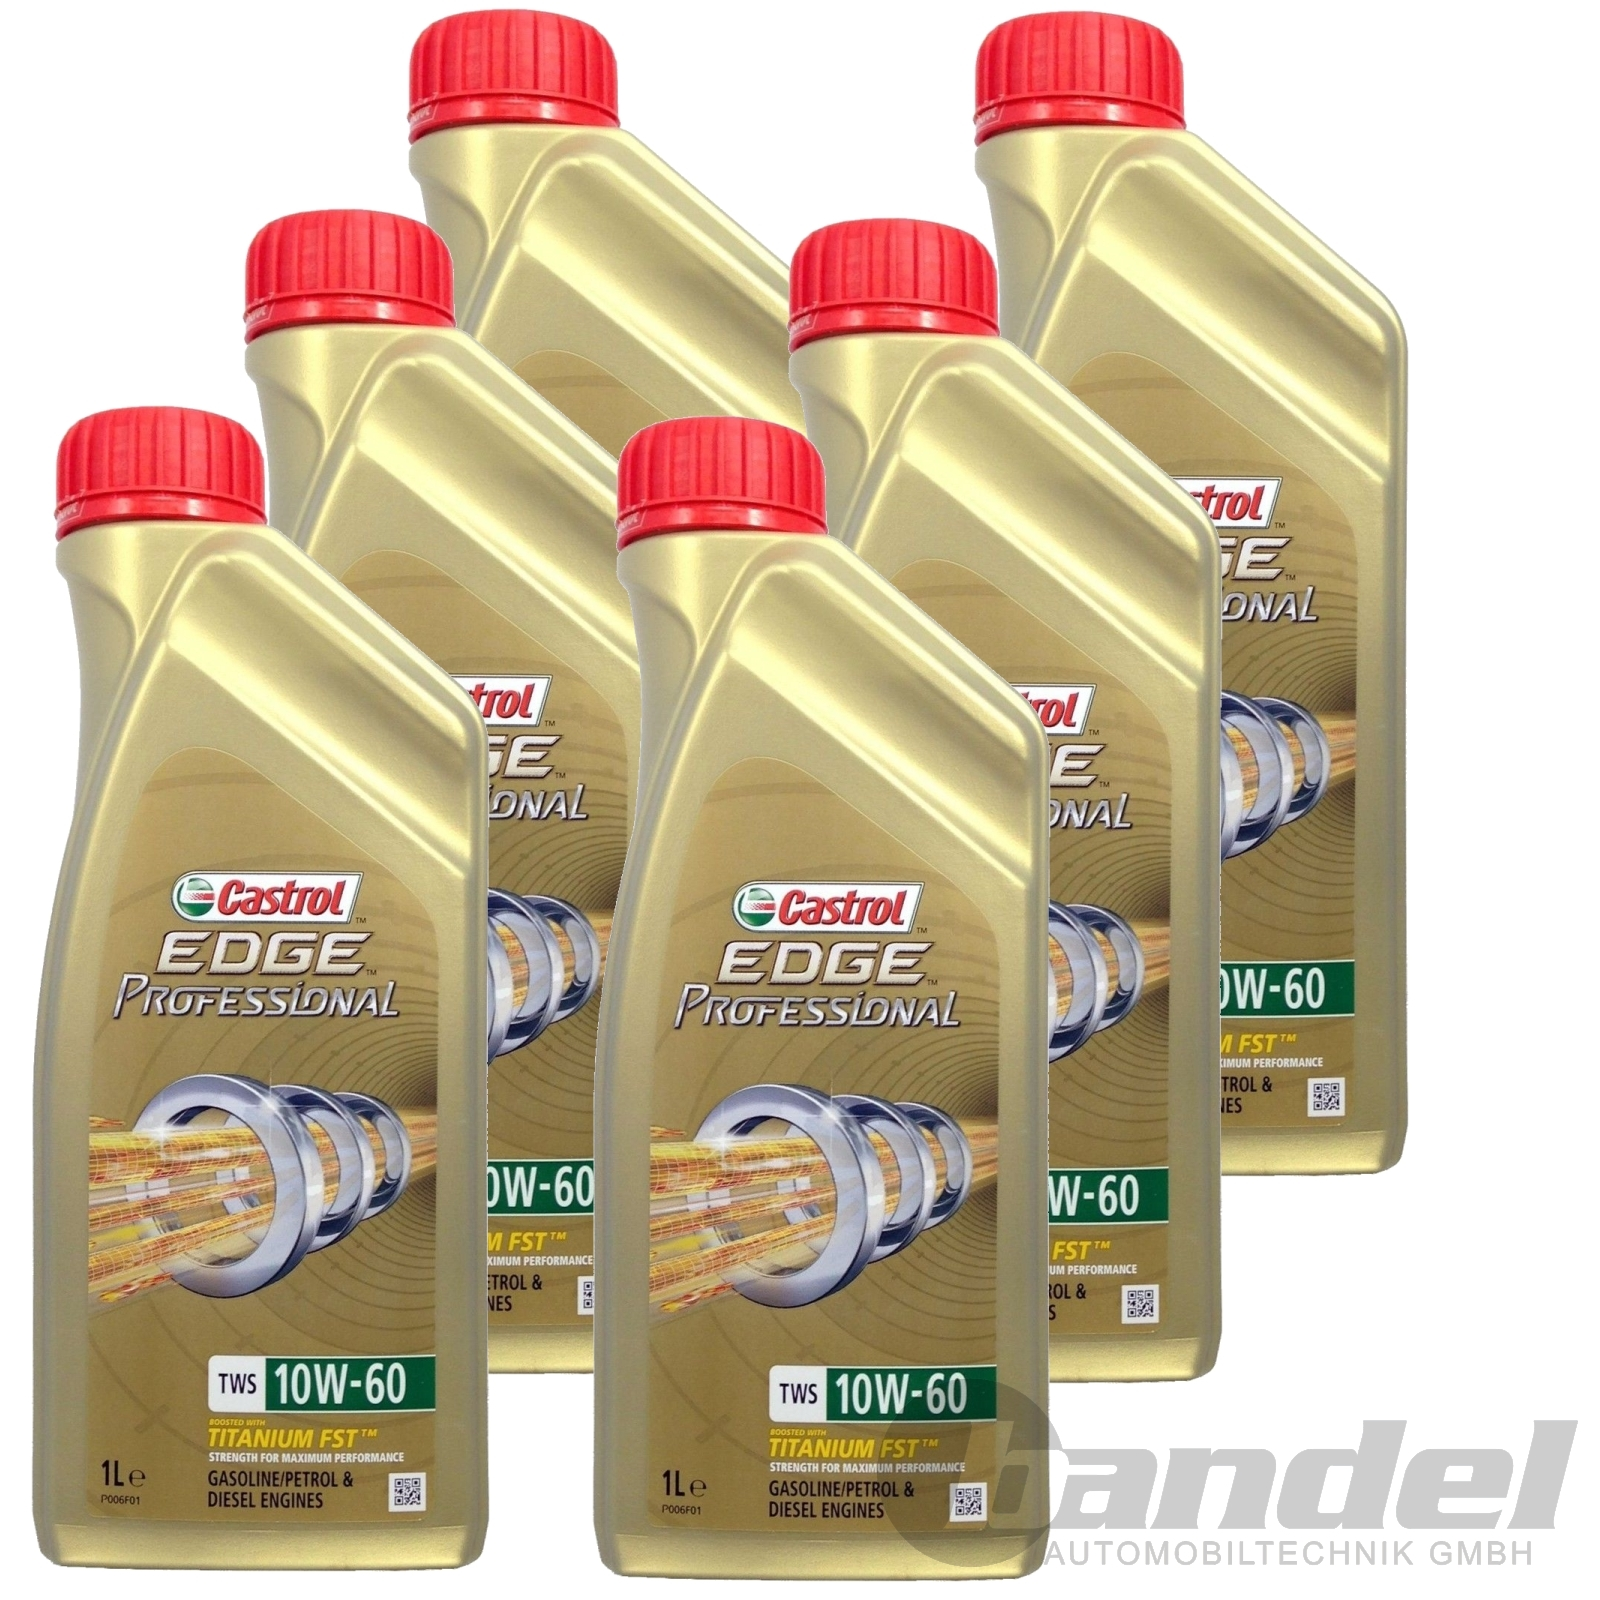 12 32 l 6x1l castrol edge 10w 60 professional tws. Black Bedroom Furniture Sets. Home Design Ideas